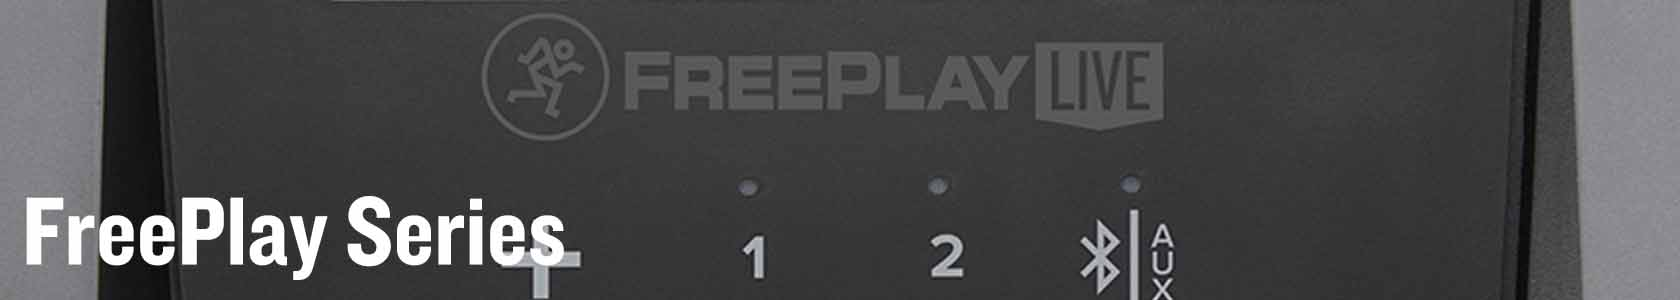 freeplay_blog